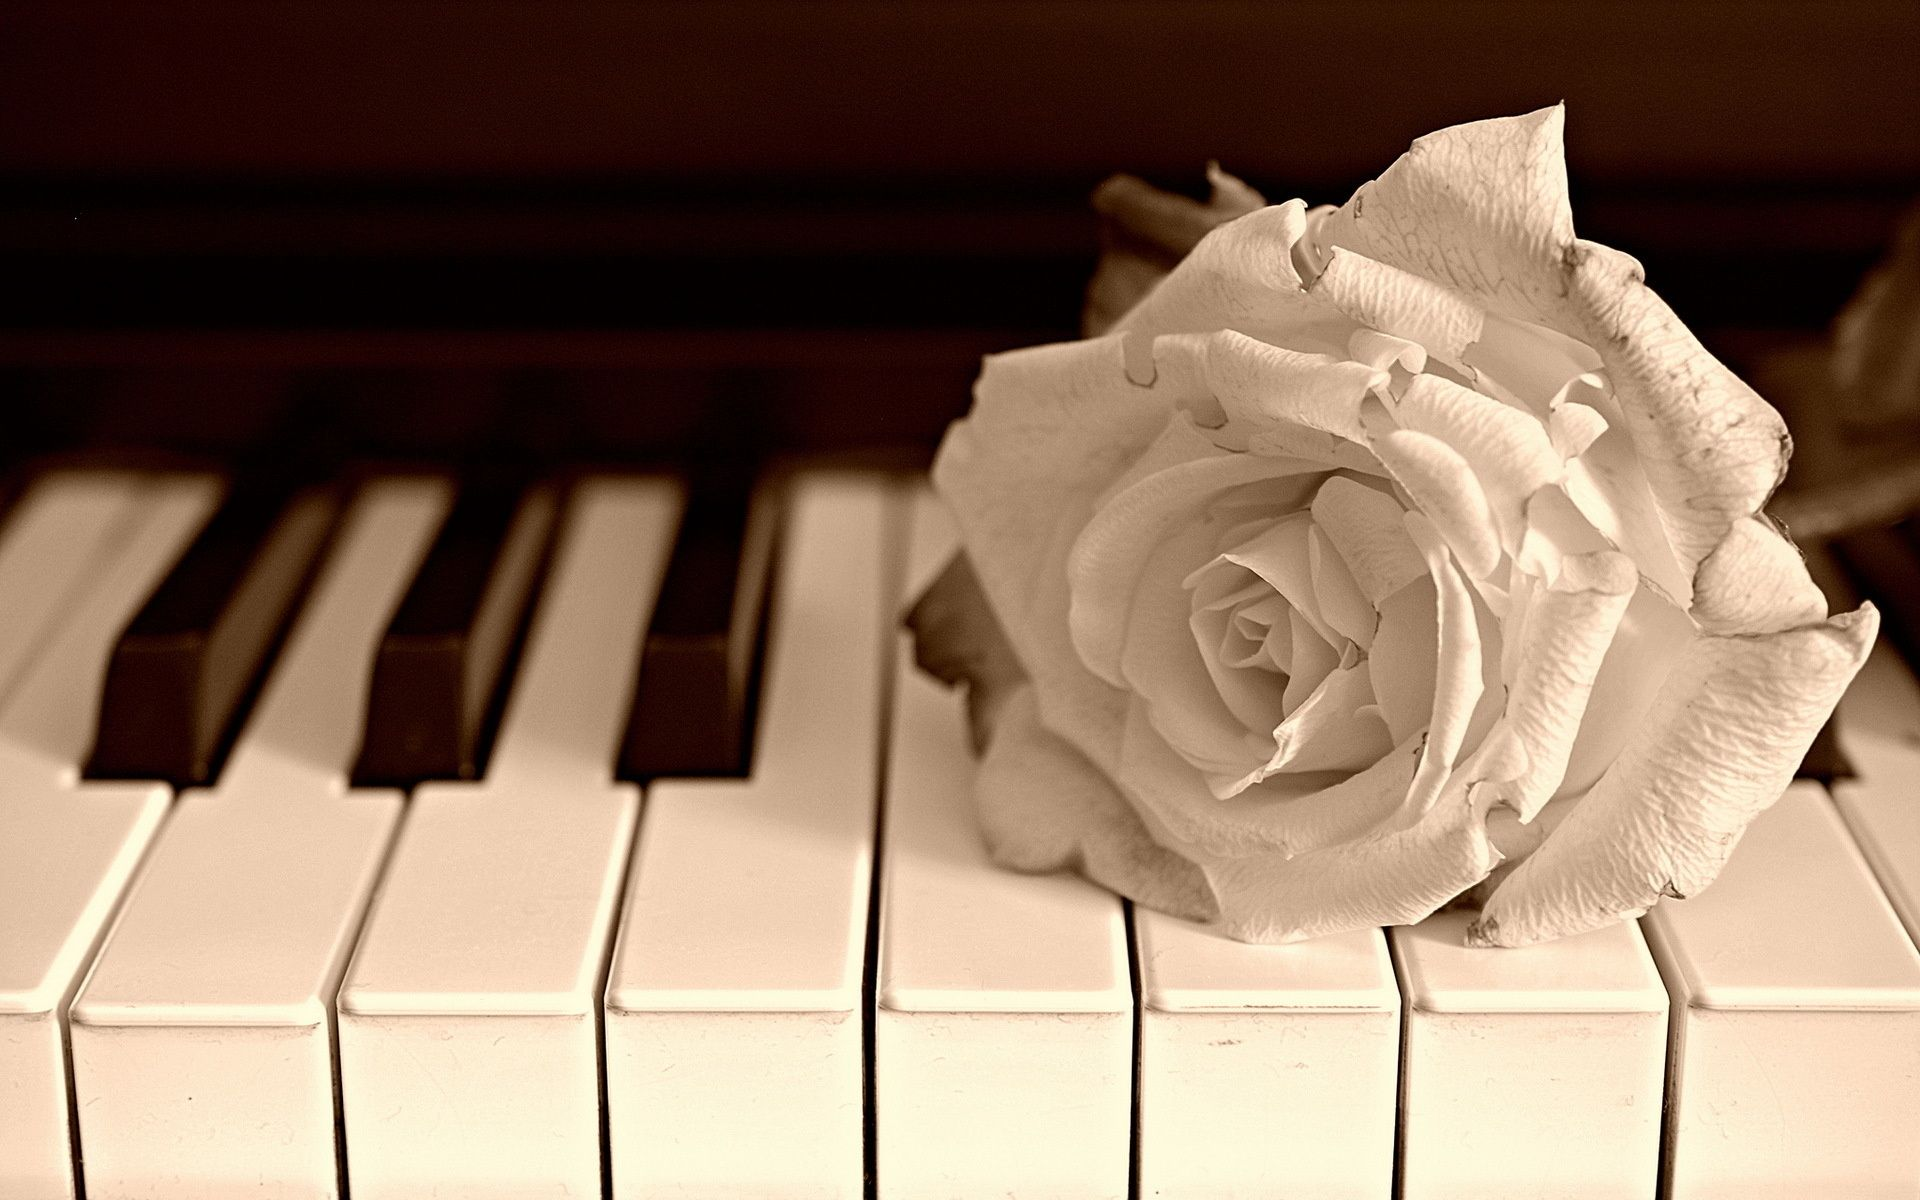 piano pictures free